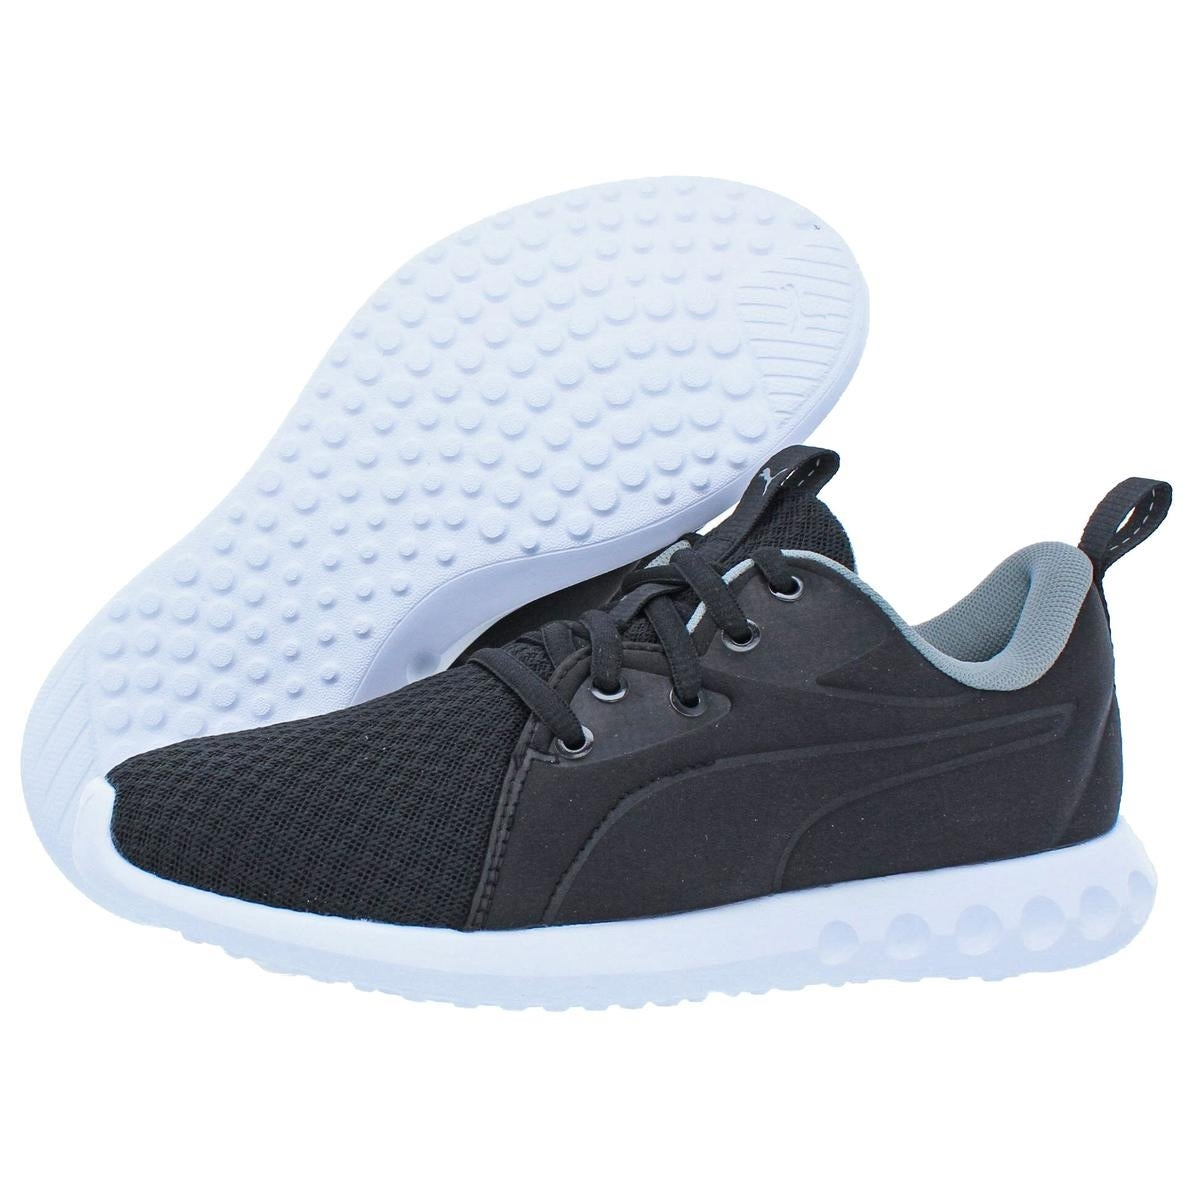 ad6b7a286e8 Shop Puma Womens Carson 2 Molded Running Shoes Soft Foam Lightweight - Free  Shipping On Orders Over  45 - Overstock - 22727044